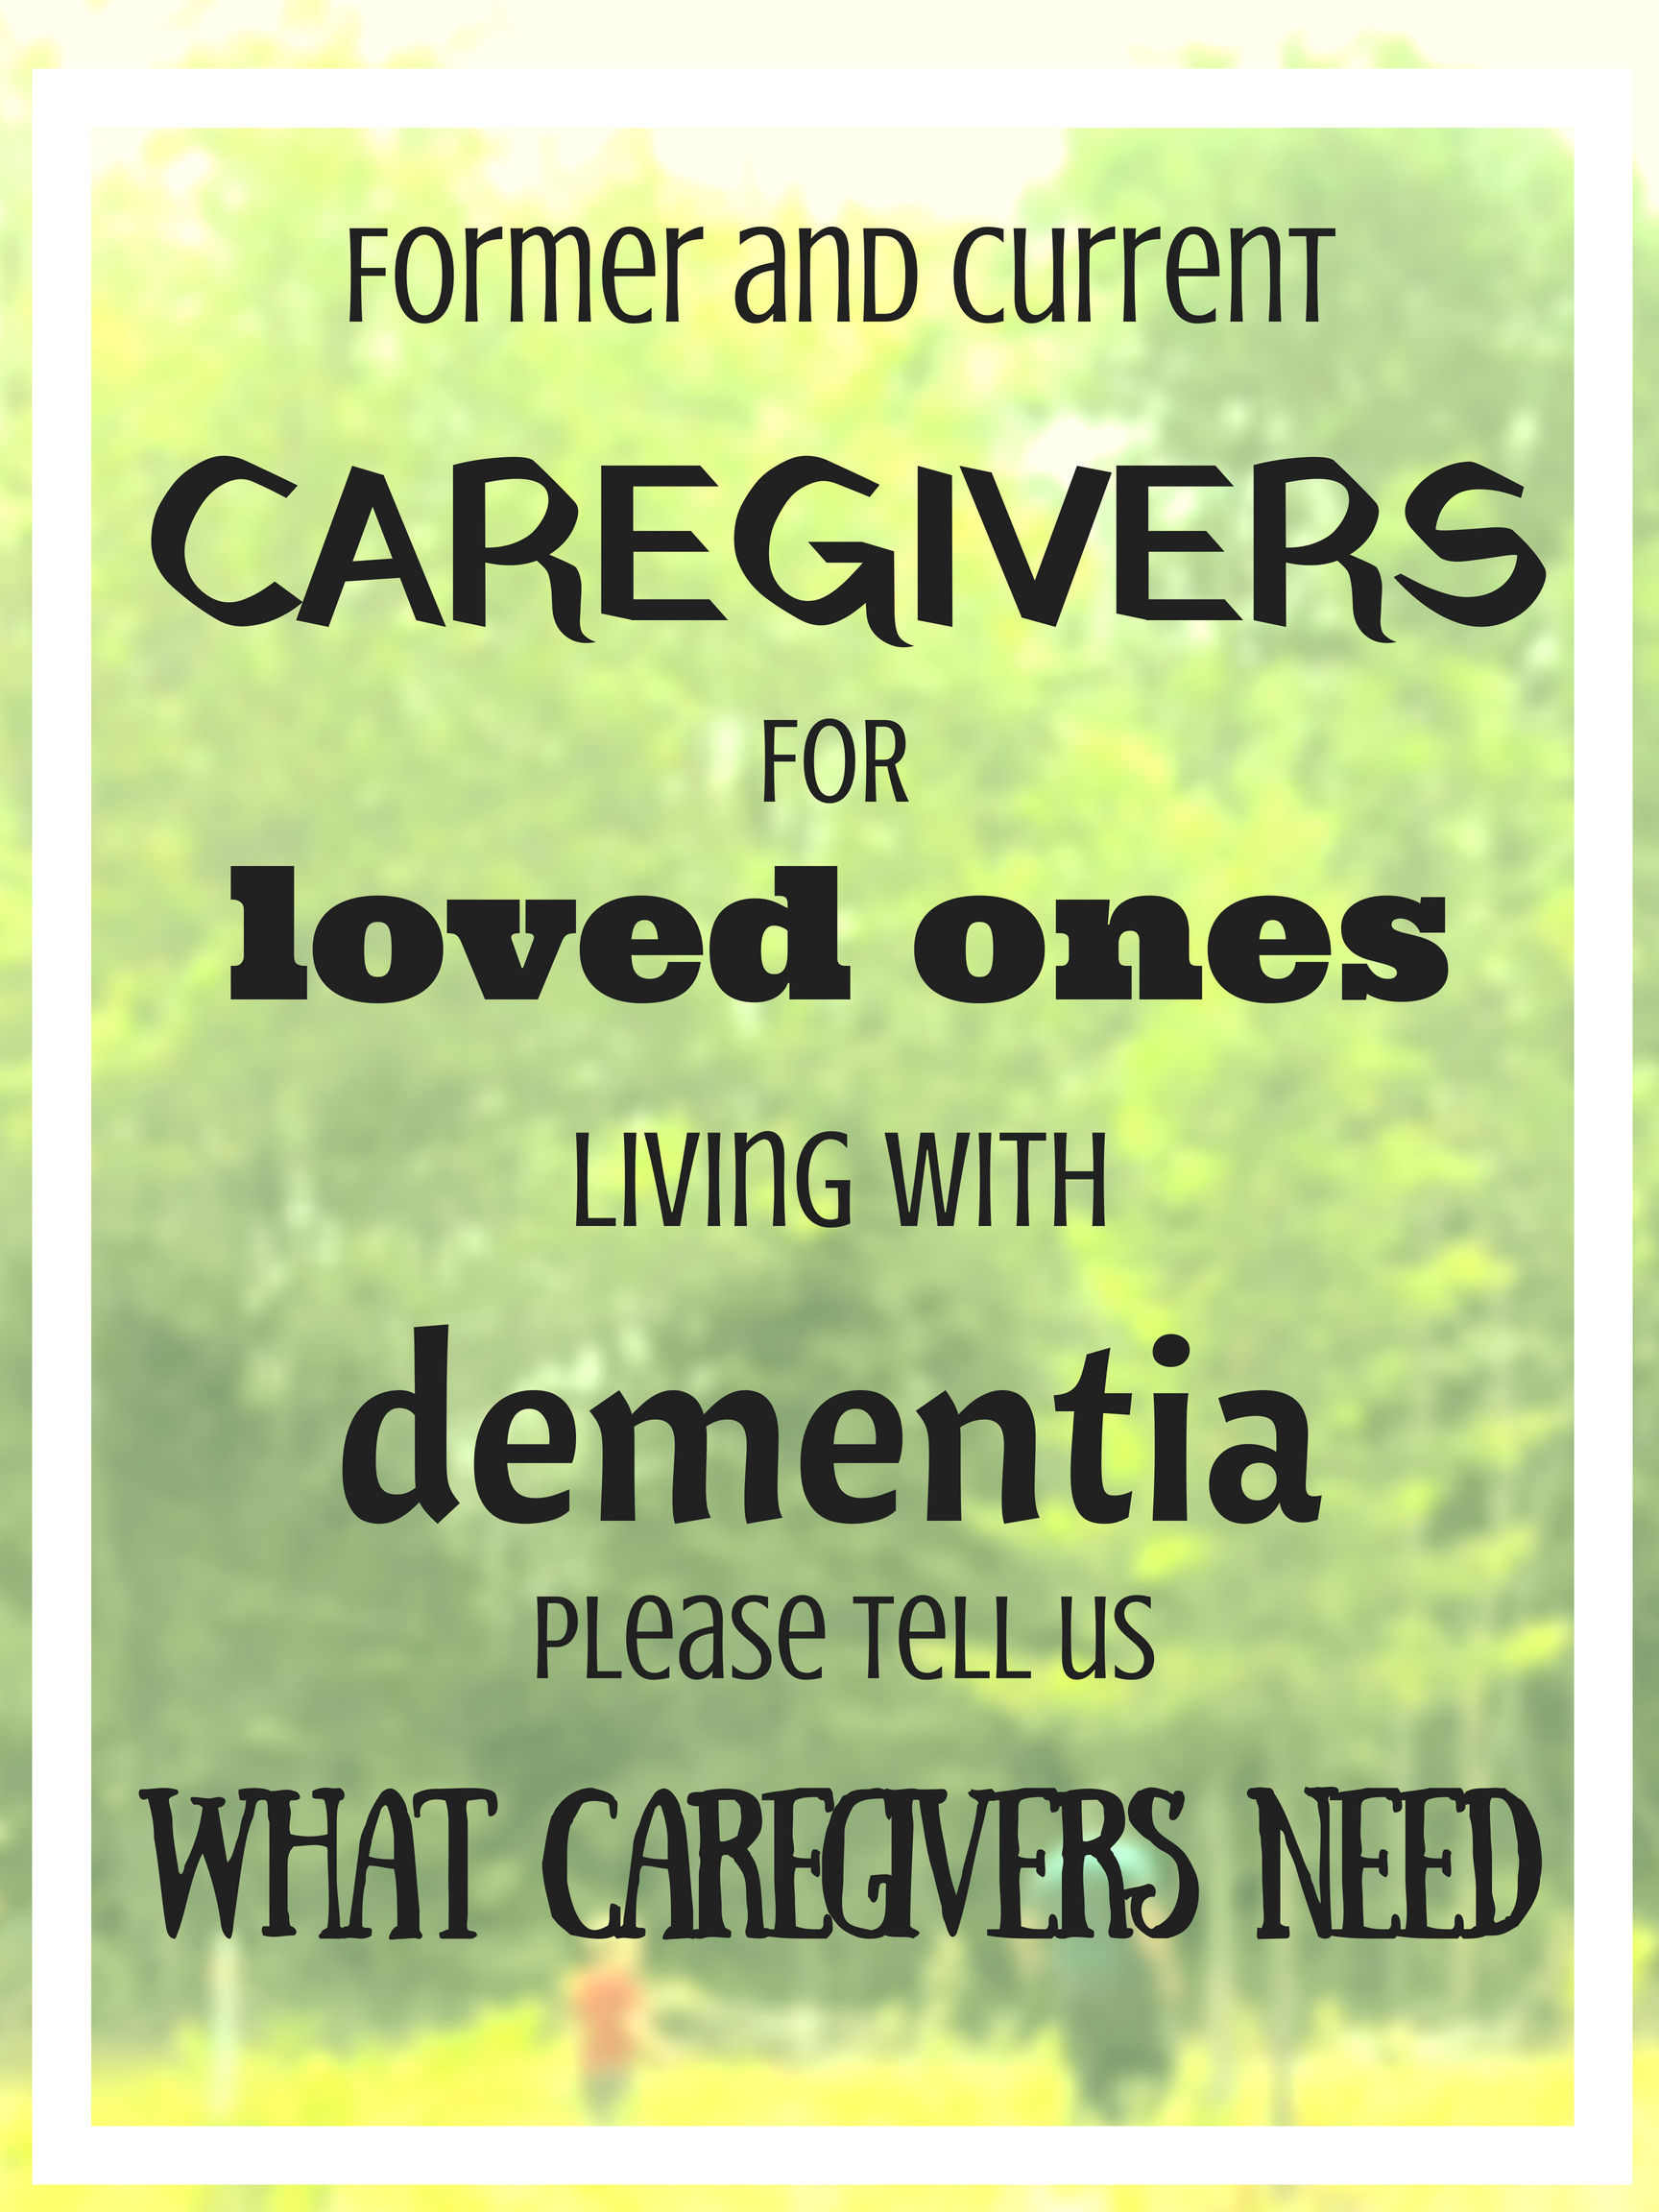 Caregivers' opinions needed